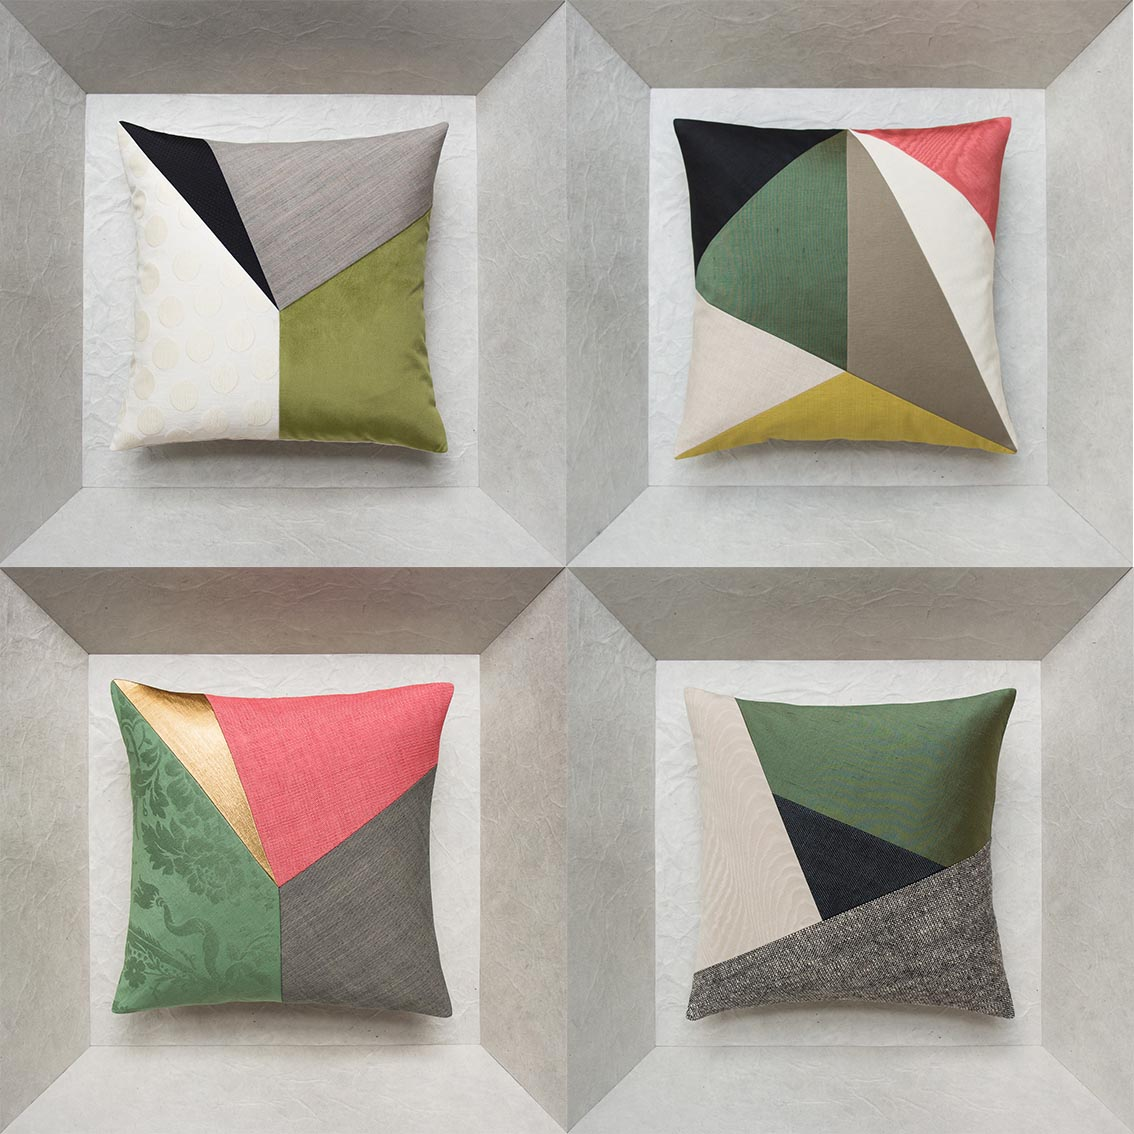 handmade cushions for interior design